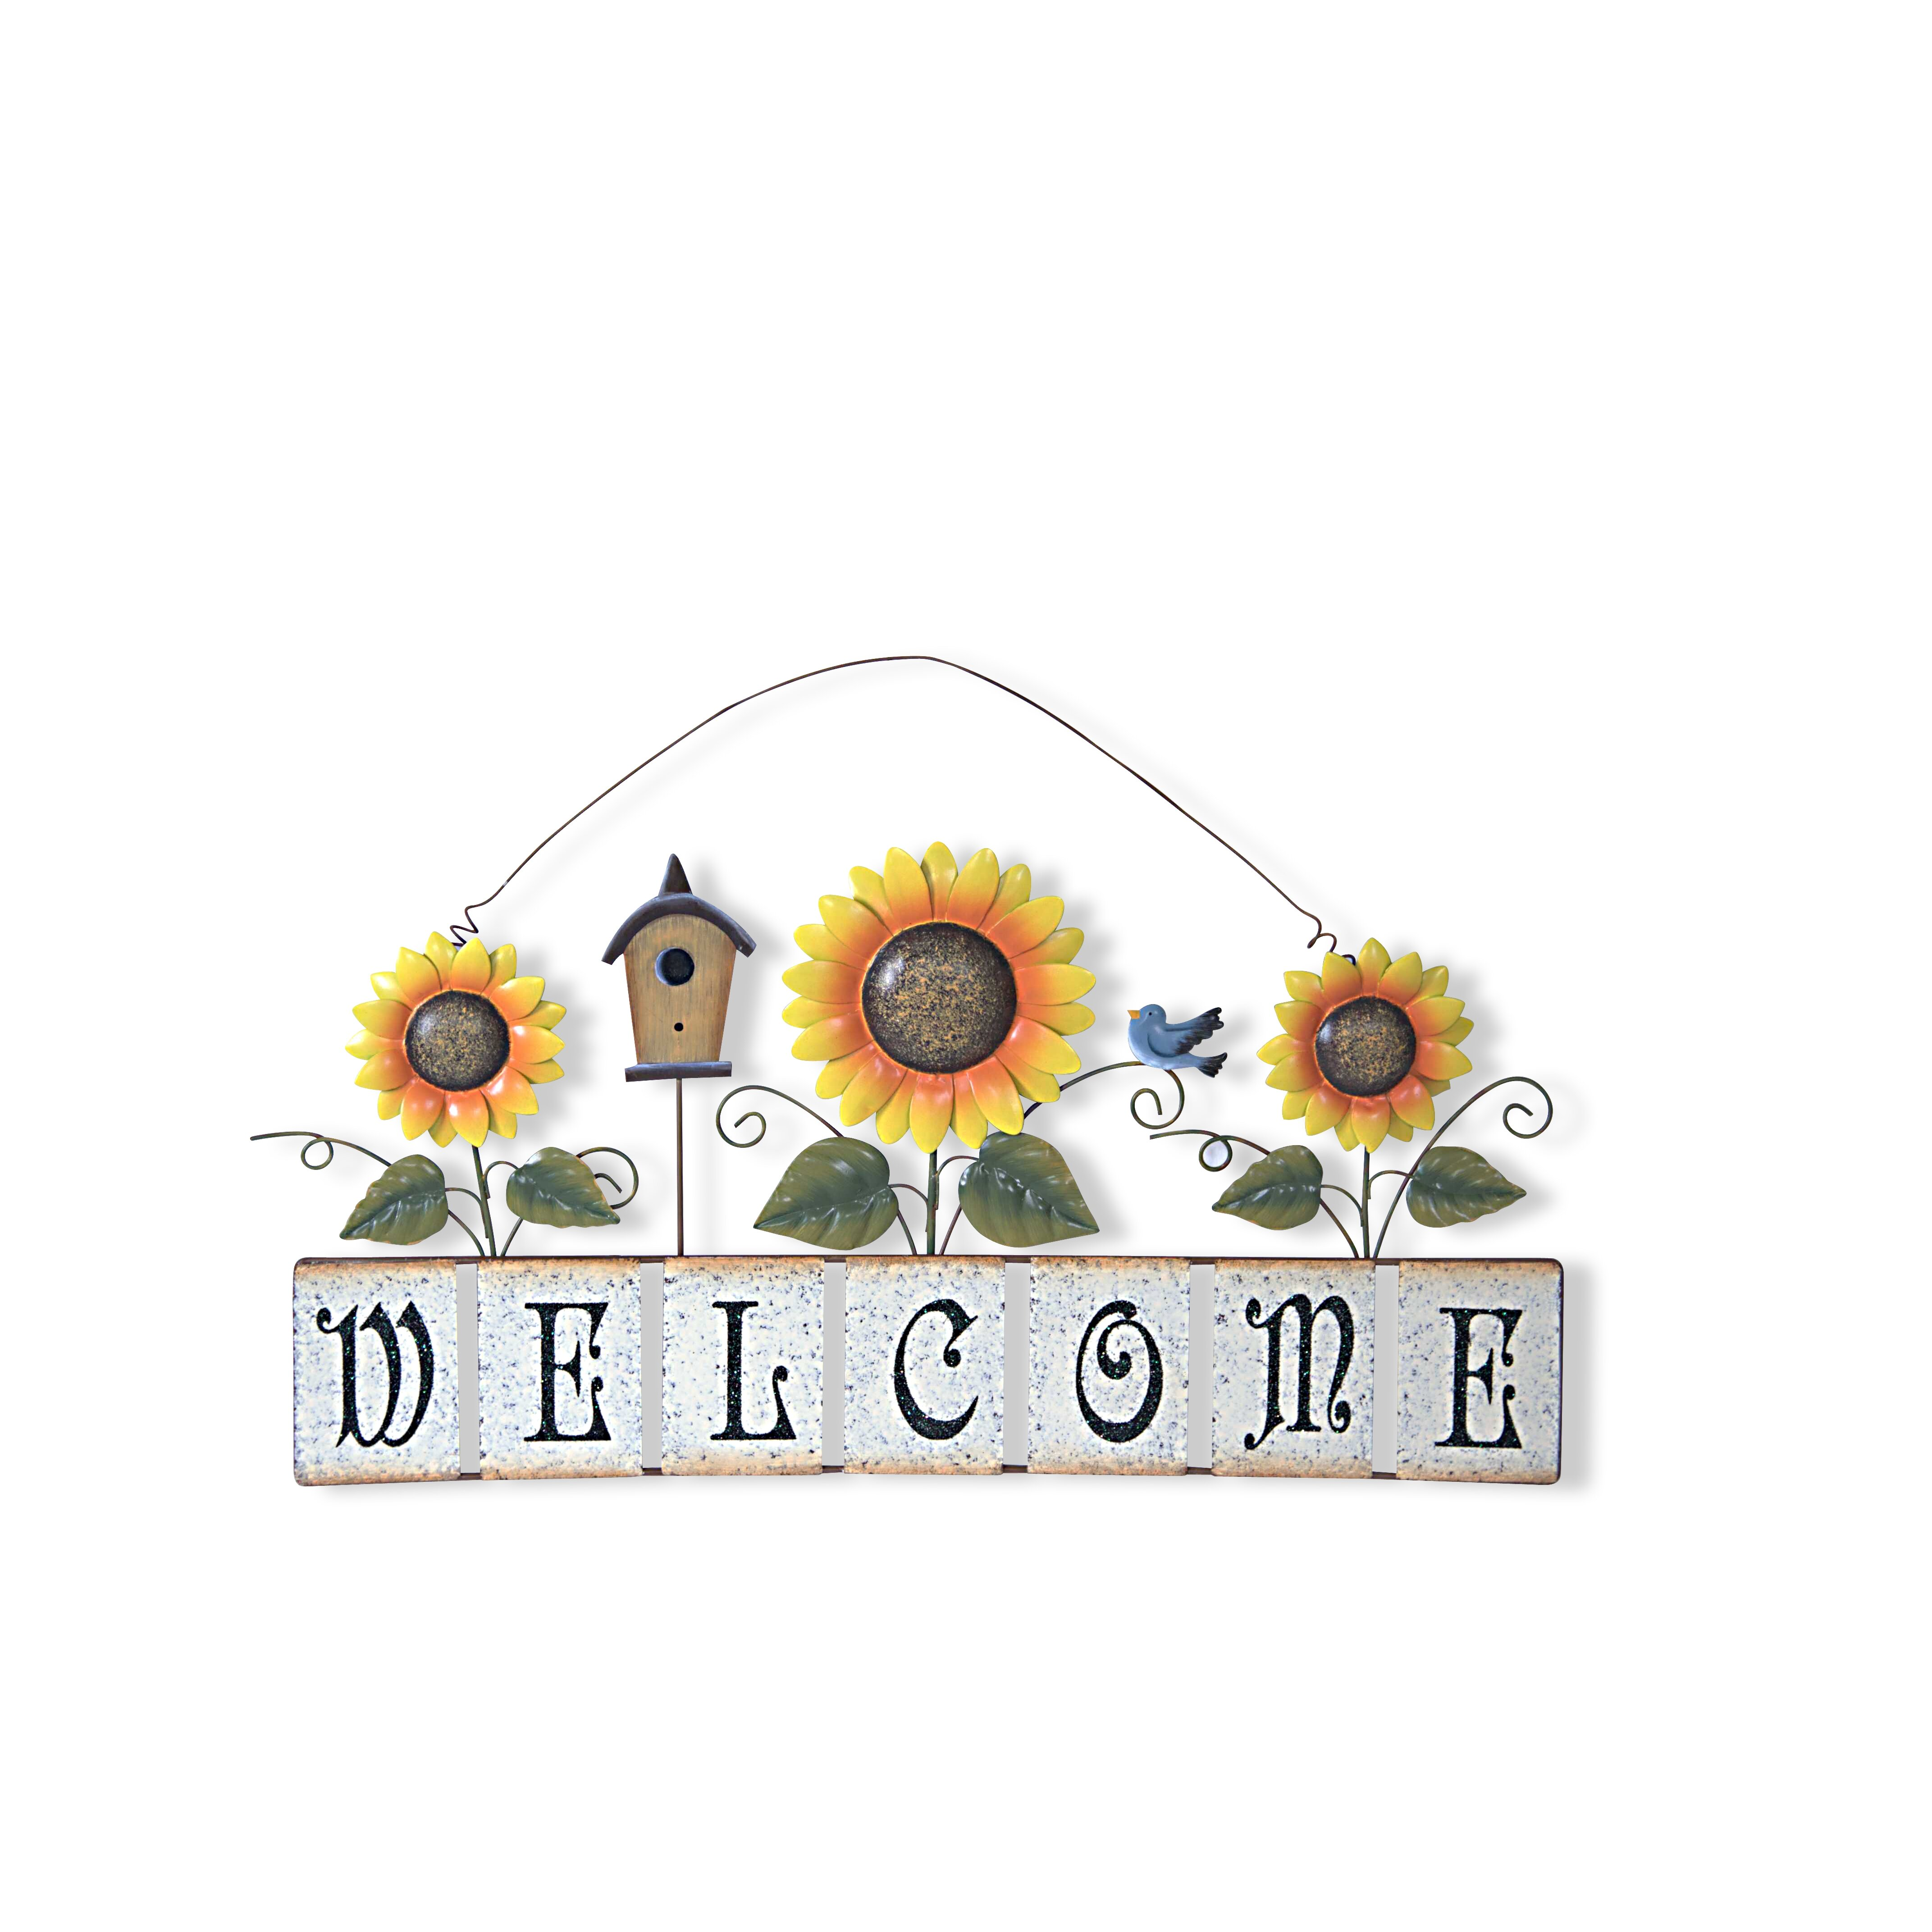 Garden Sunflower Wall Decor : Attractiondesignhome garden sunflower welcome sign wall